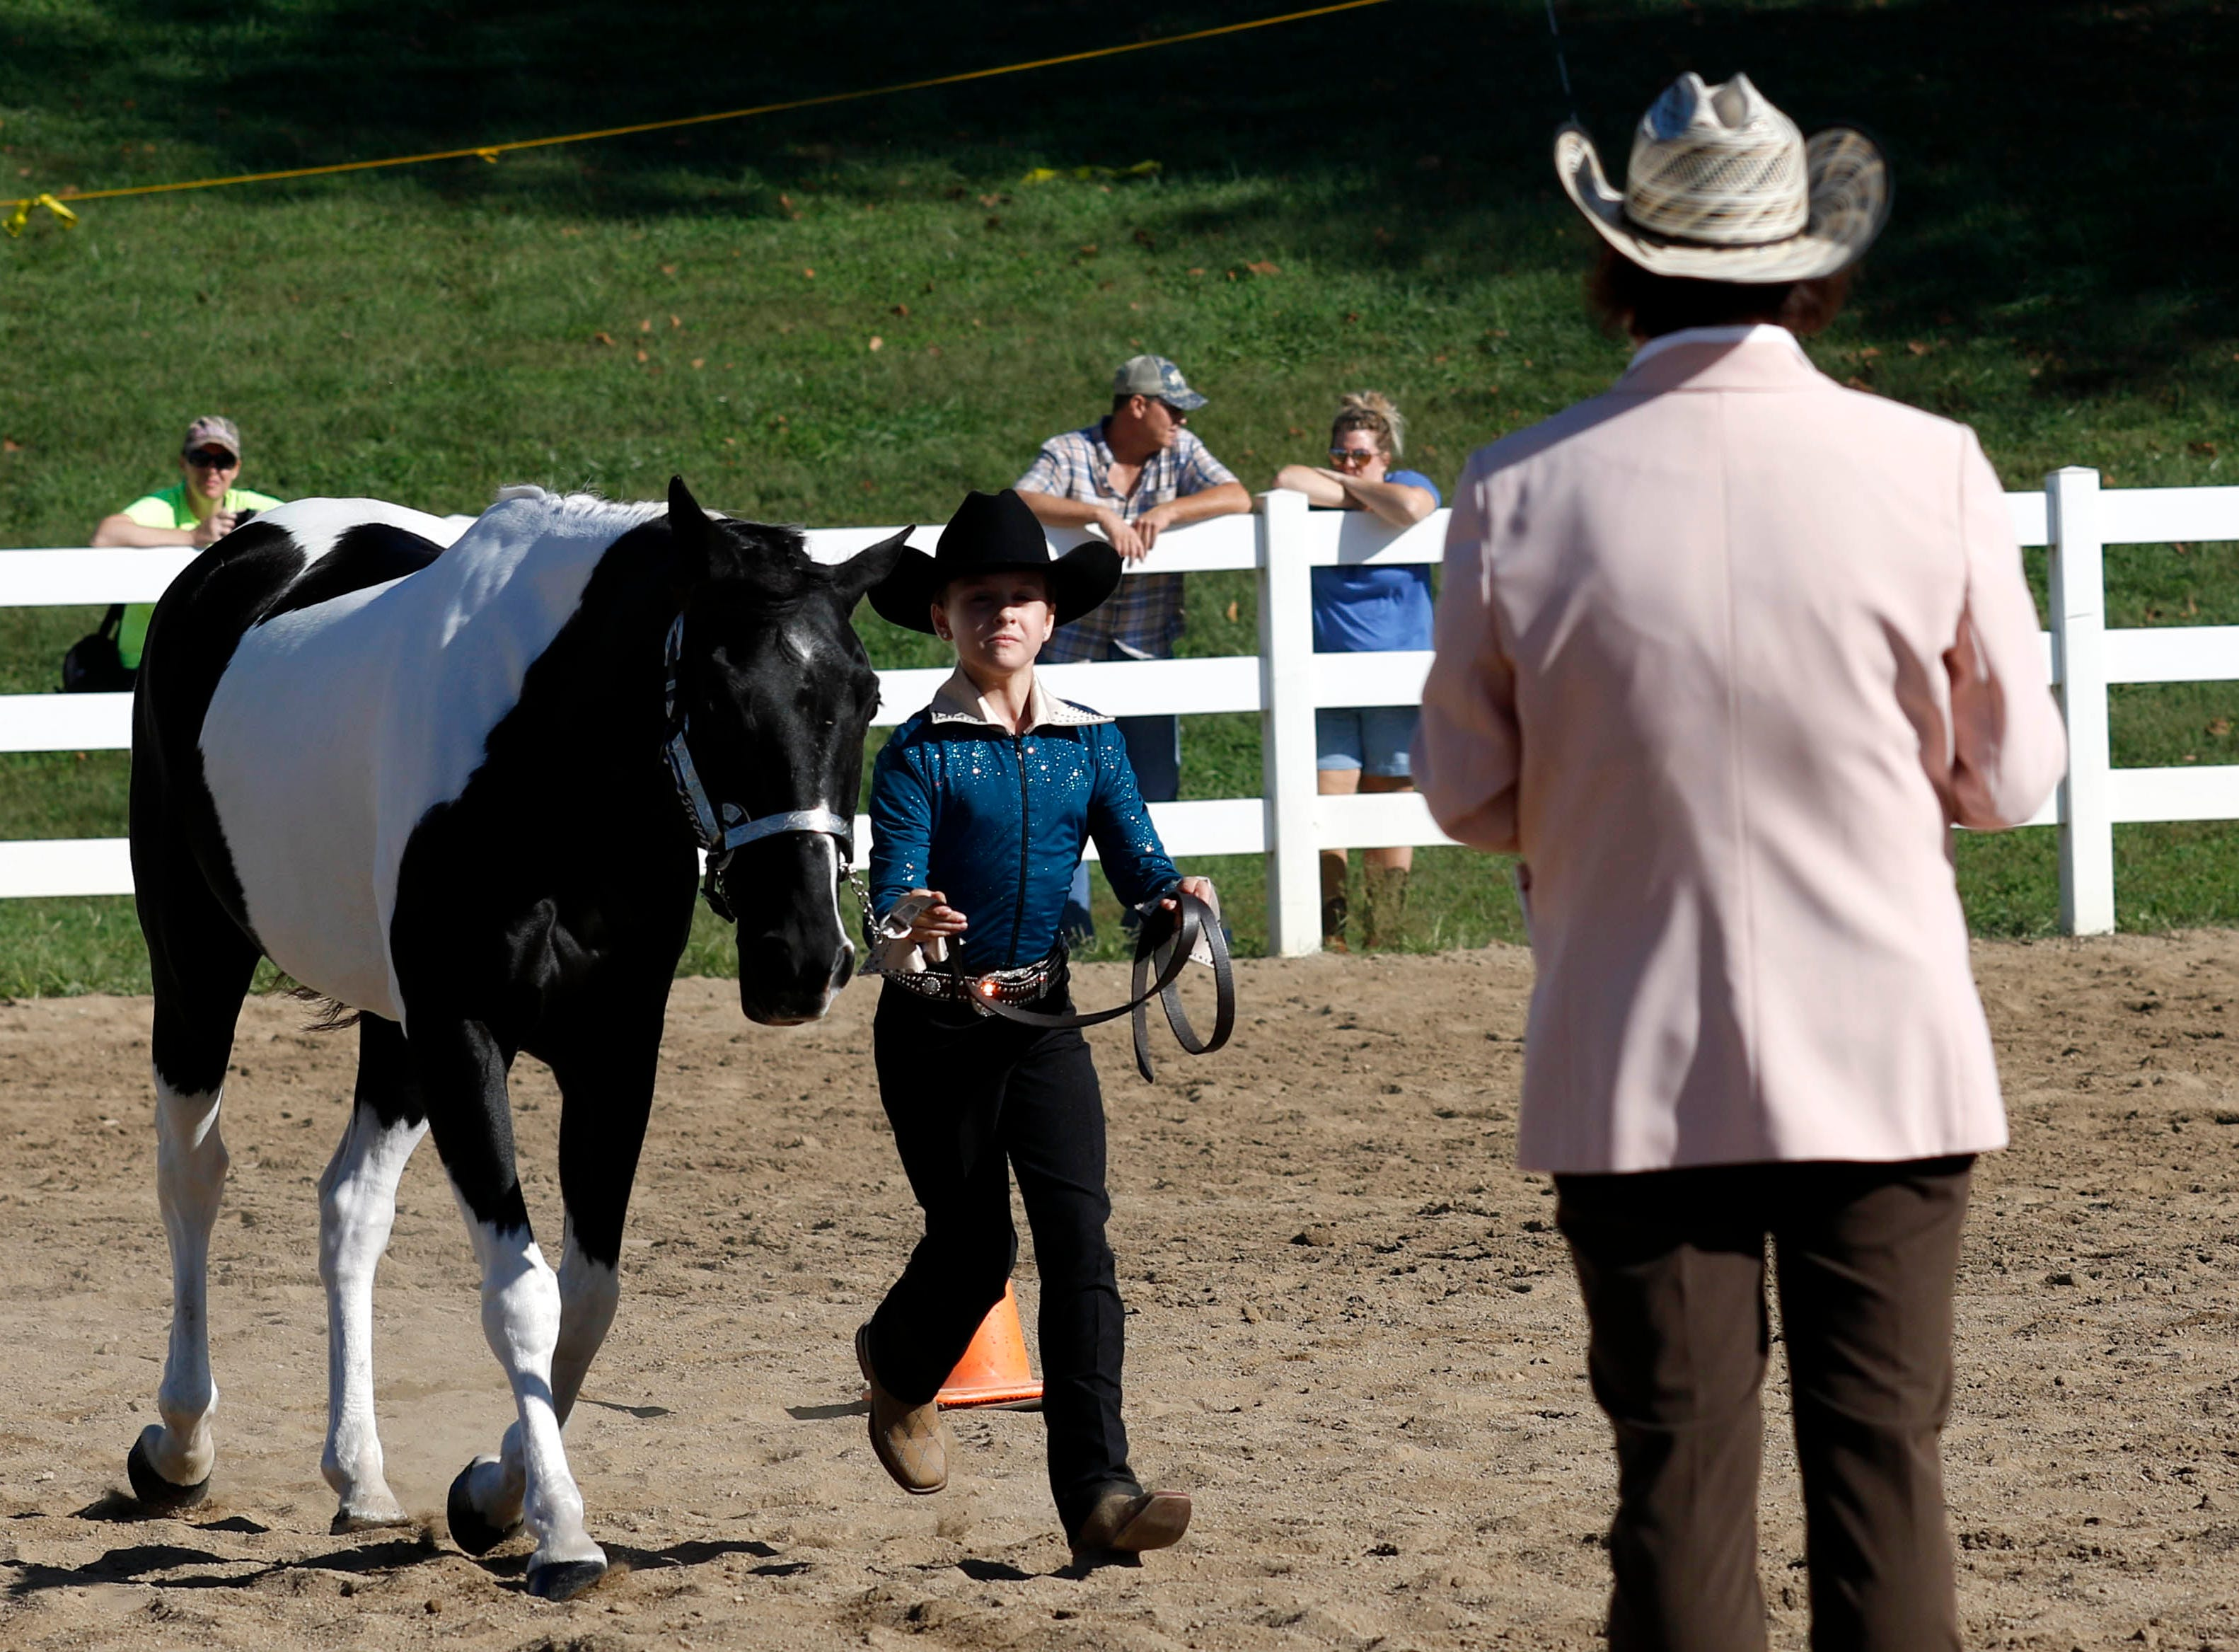 The junior fair horse show was held Wednesday, Oct. 11, 2018, at the Fairfield County Fair in Lancaster.